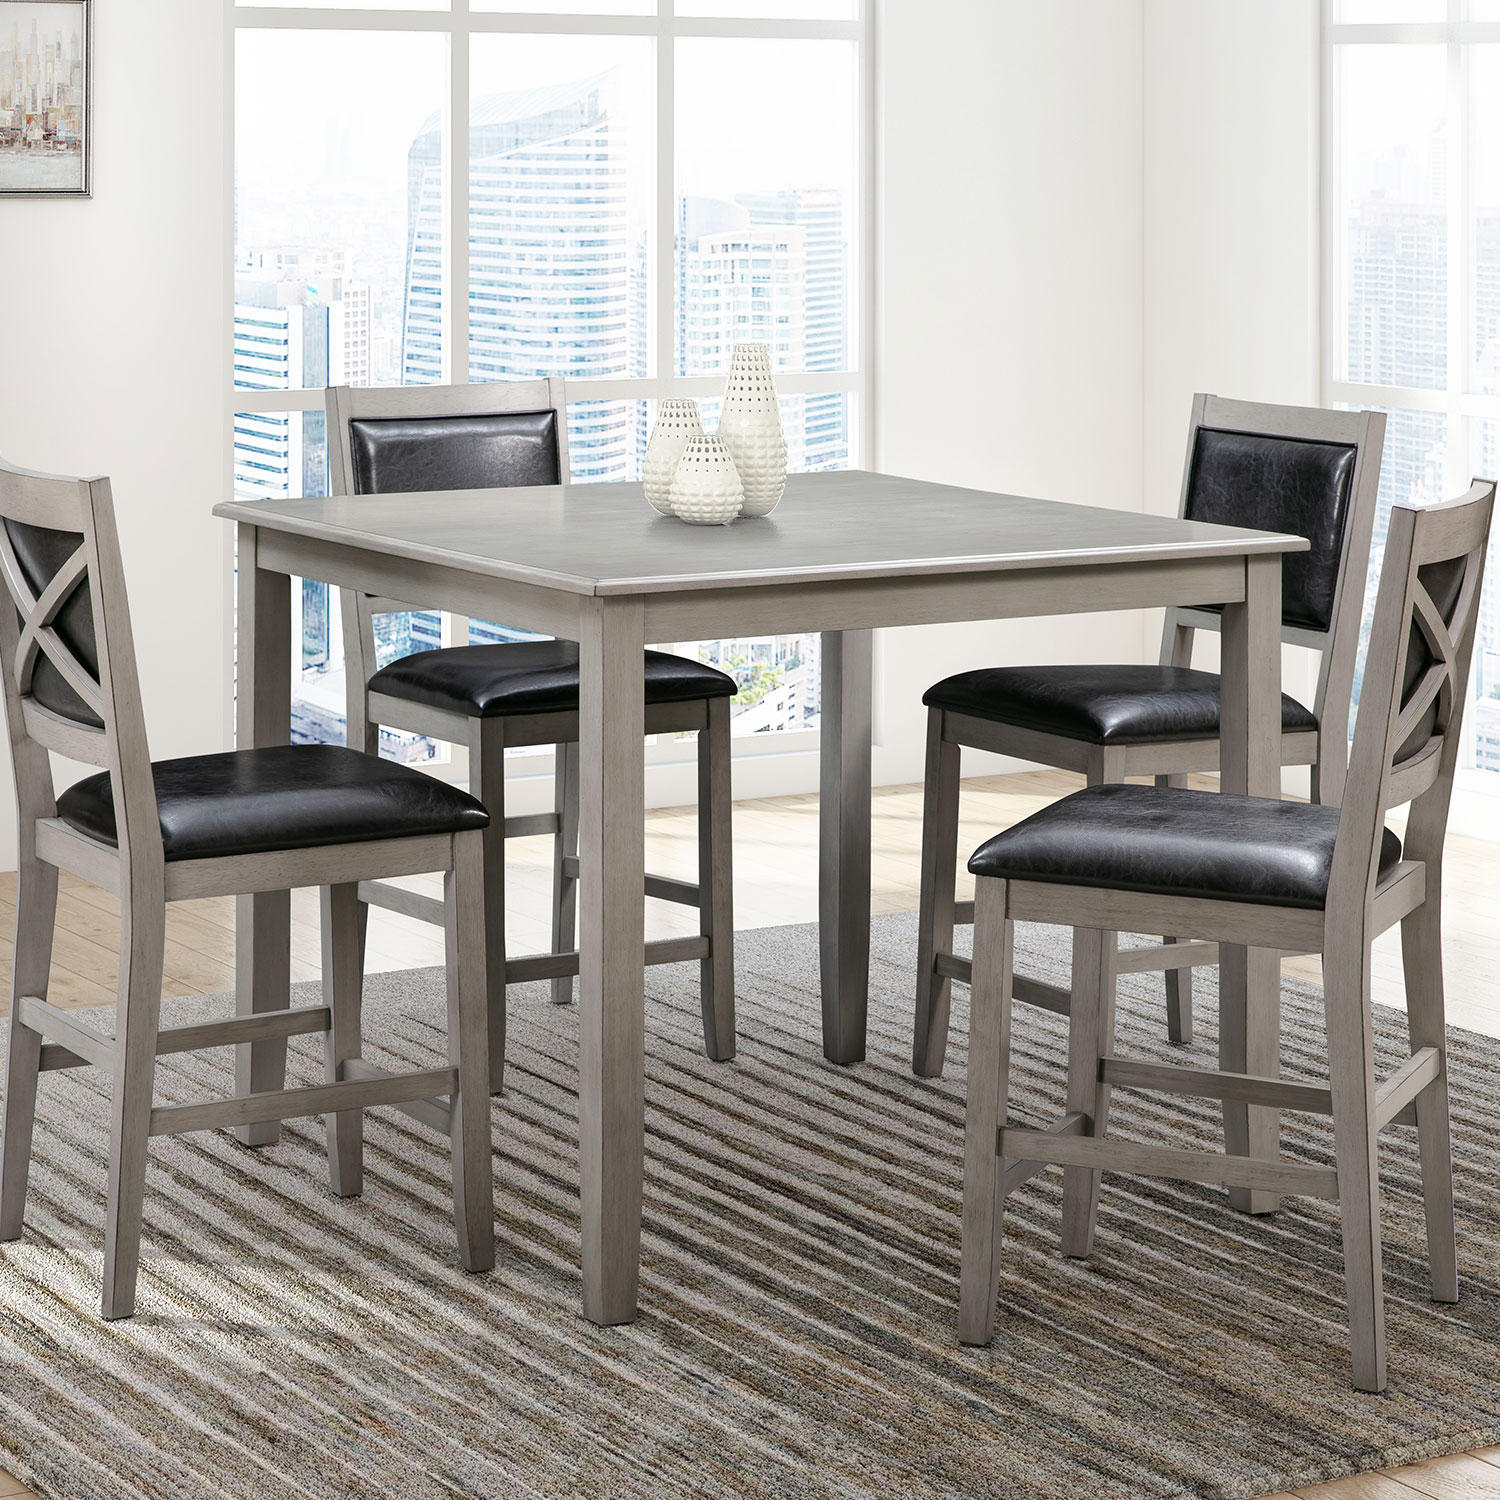 Abbyson Living Rory 5-Piece Counter Height Wood Dining Set